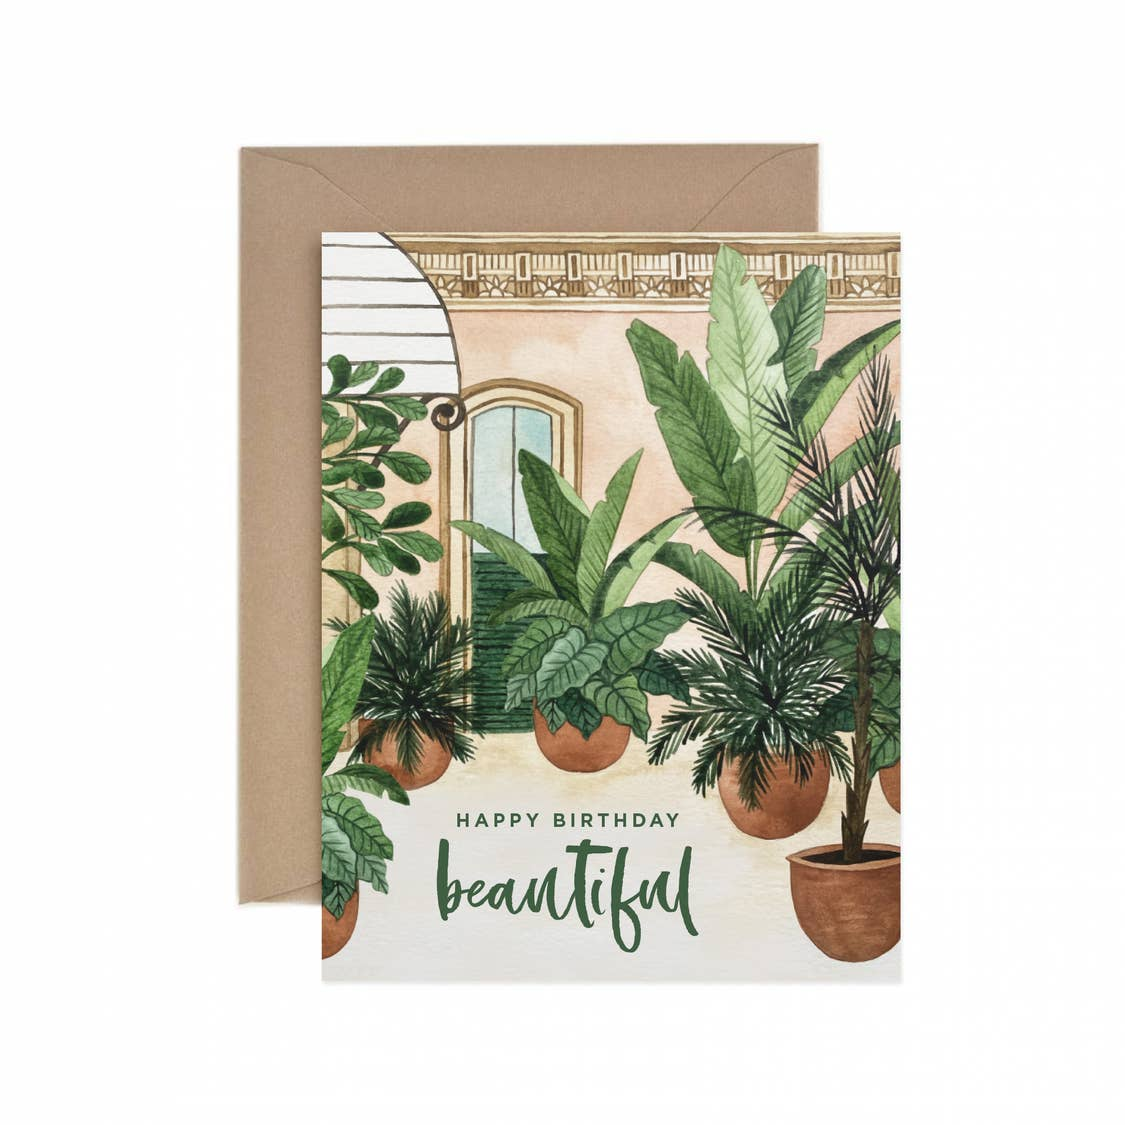 Happy Birthday Beautiful Card - Urban Sprouts